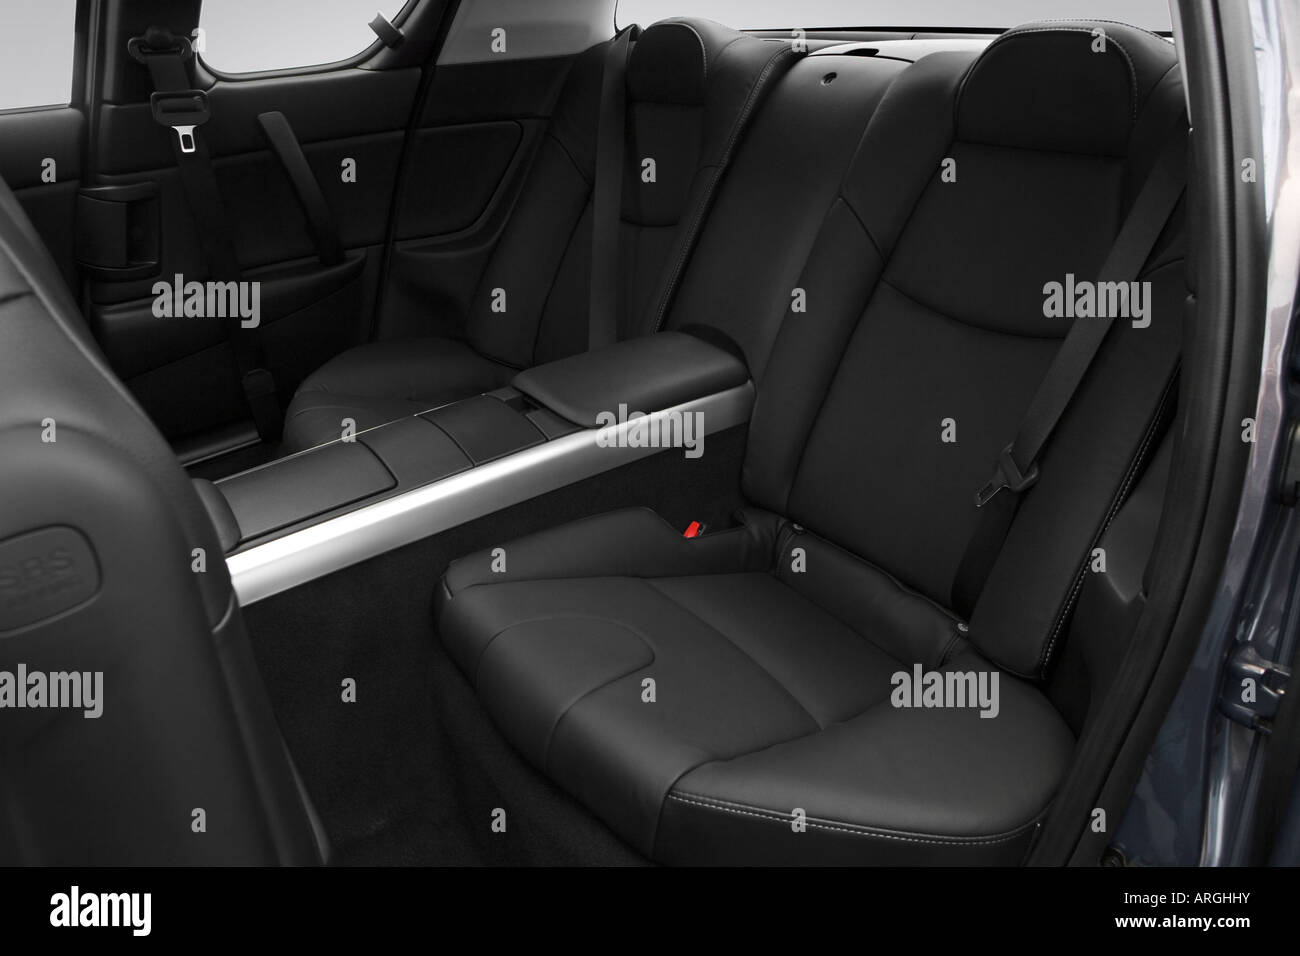 2007 mazda rx 8 6mt grand touring in gray rear seats stock photo 16049702 alamy. Black Bedroom Furniture Sets. Home Design Ideas